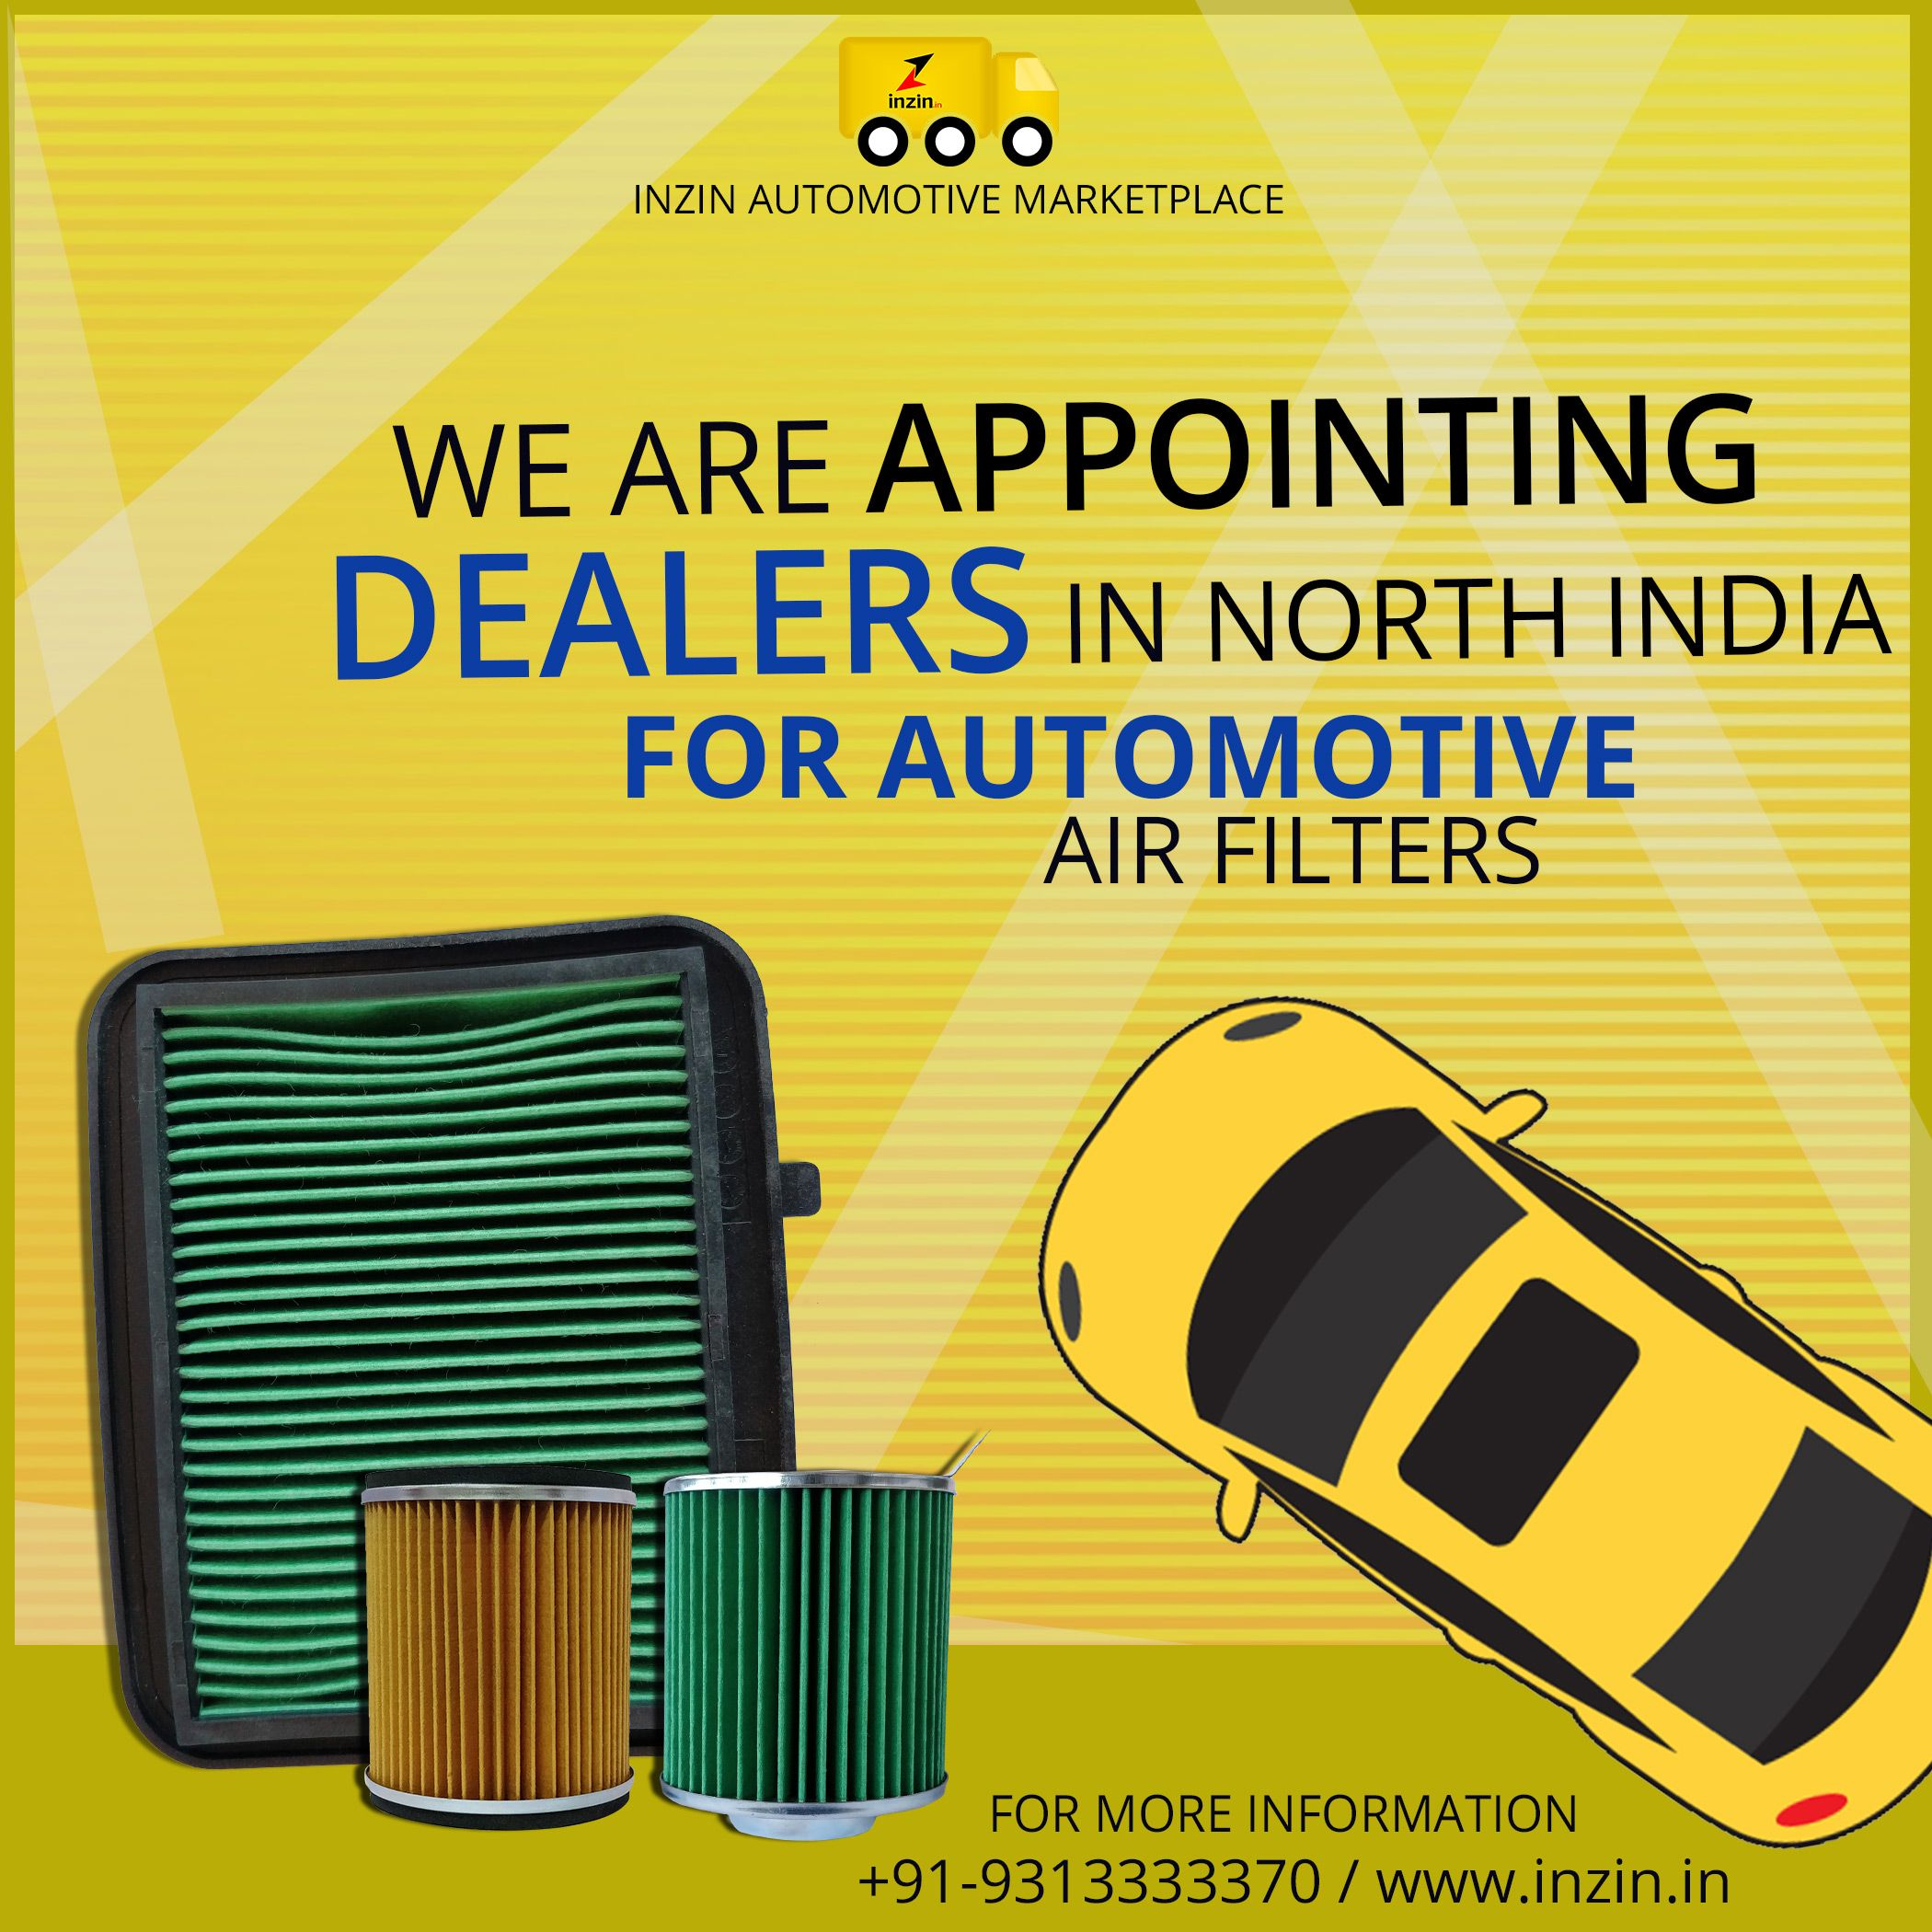 inzin Automotive Marketplace pvt ltd  is Appointing a